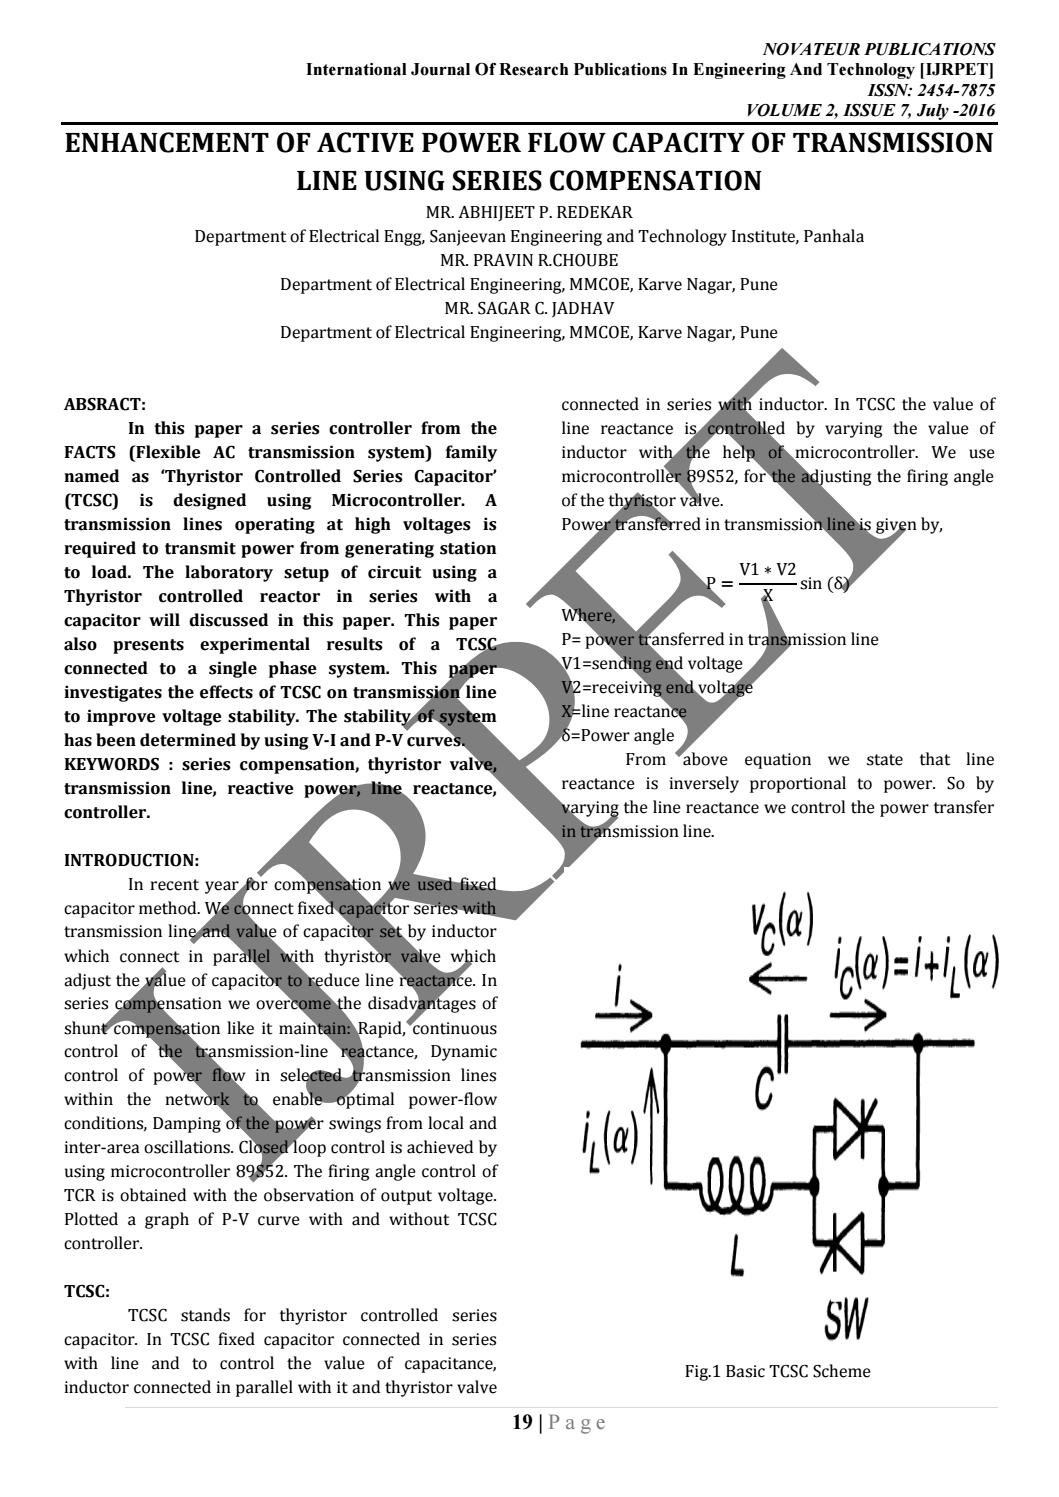 Journalnx Enhancement Of Active Power Flow Capacity Transmission Silicon Bilateral Switch Line Using Series Compensation By Issuu